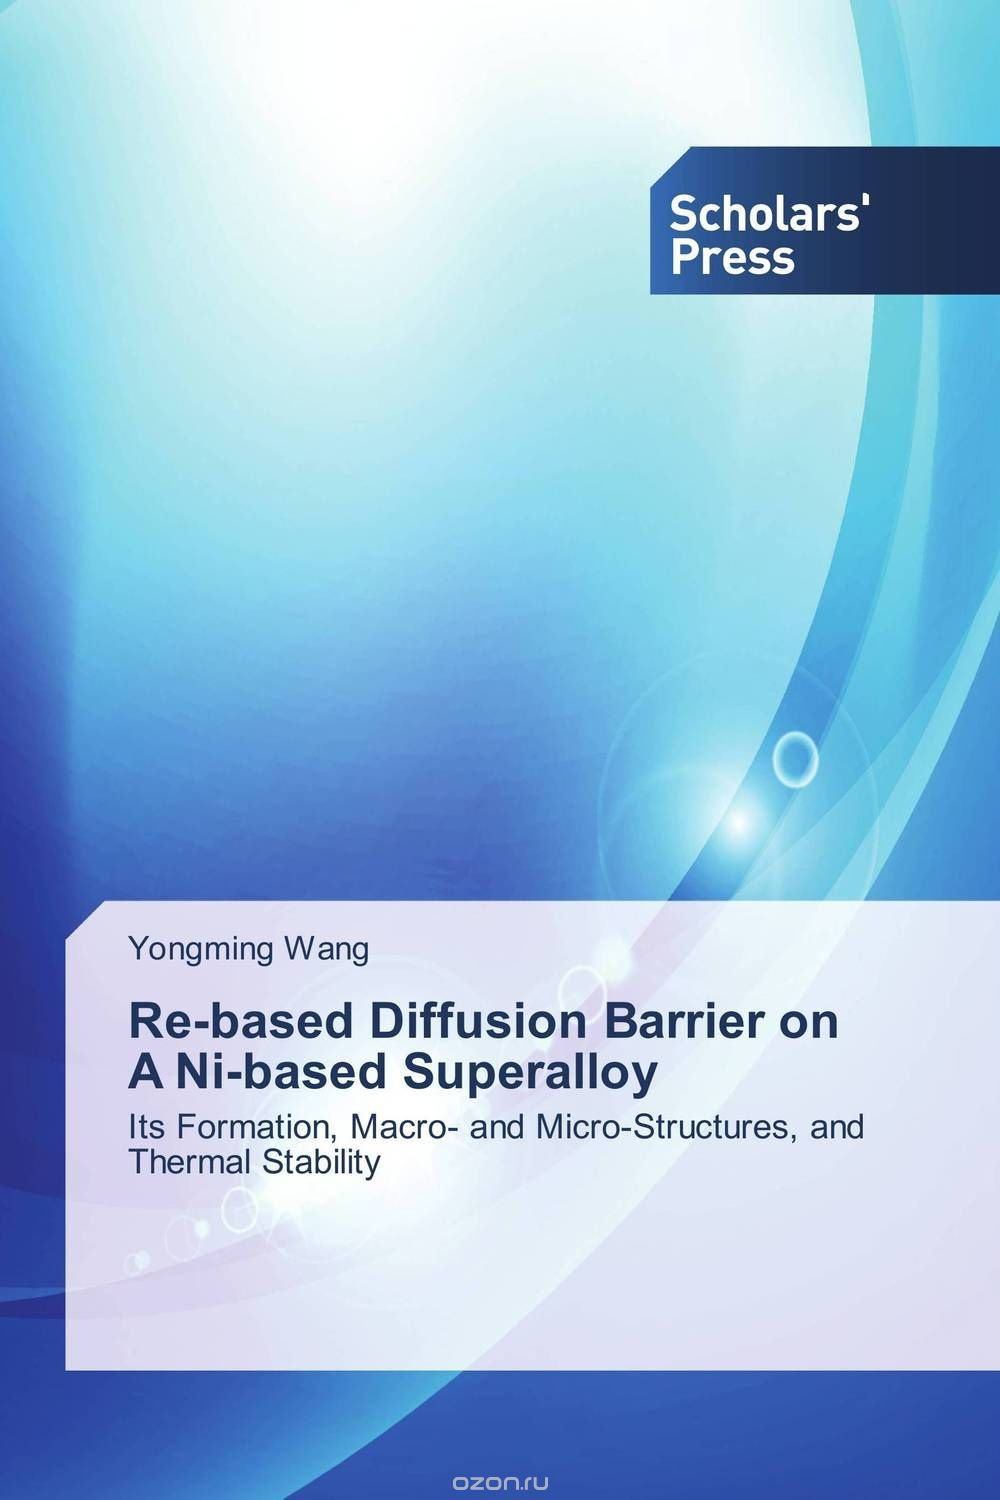 Re-based Diffusion Barrier on A Ni-based Superalloy